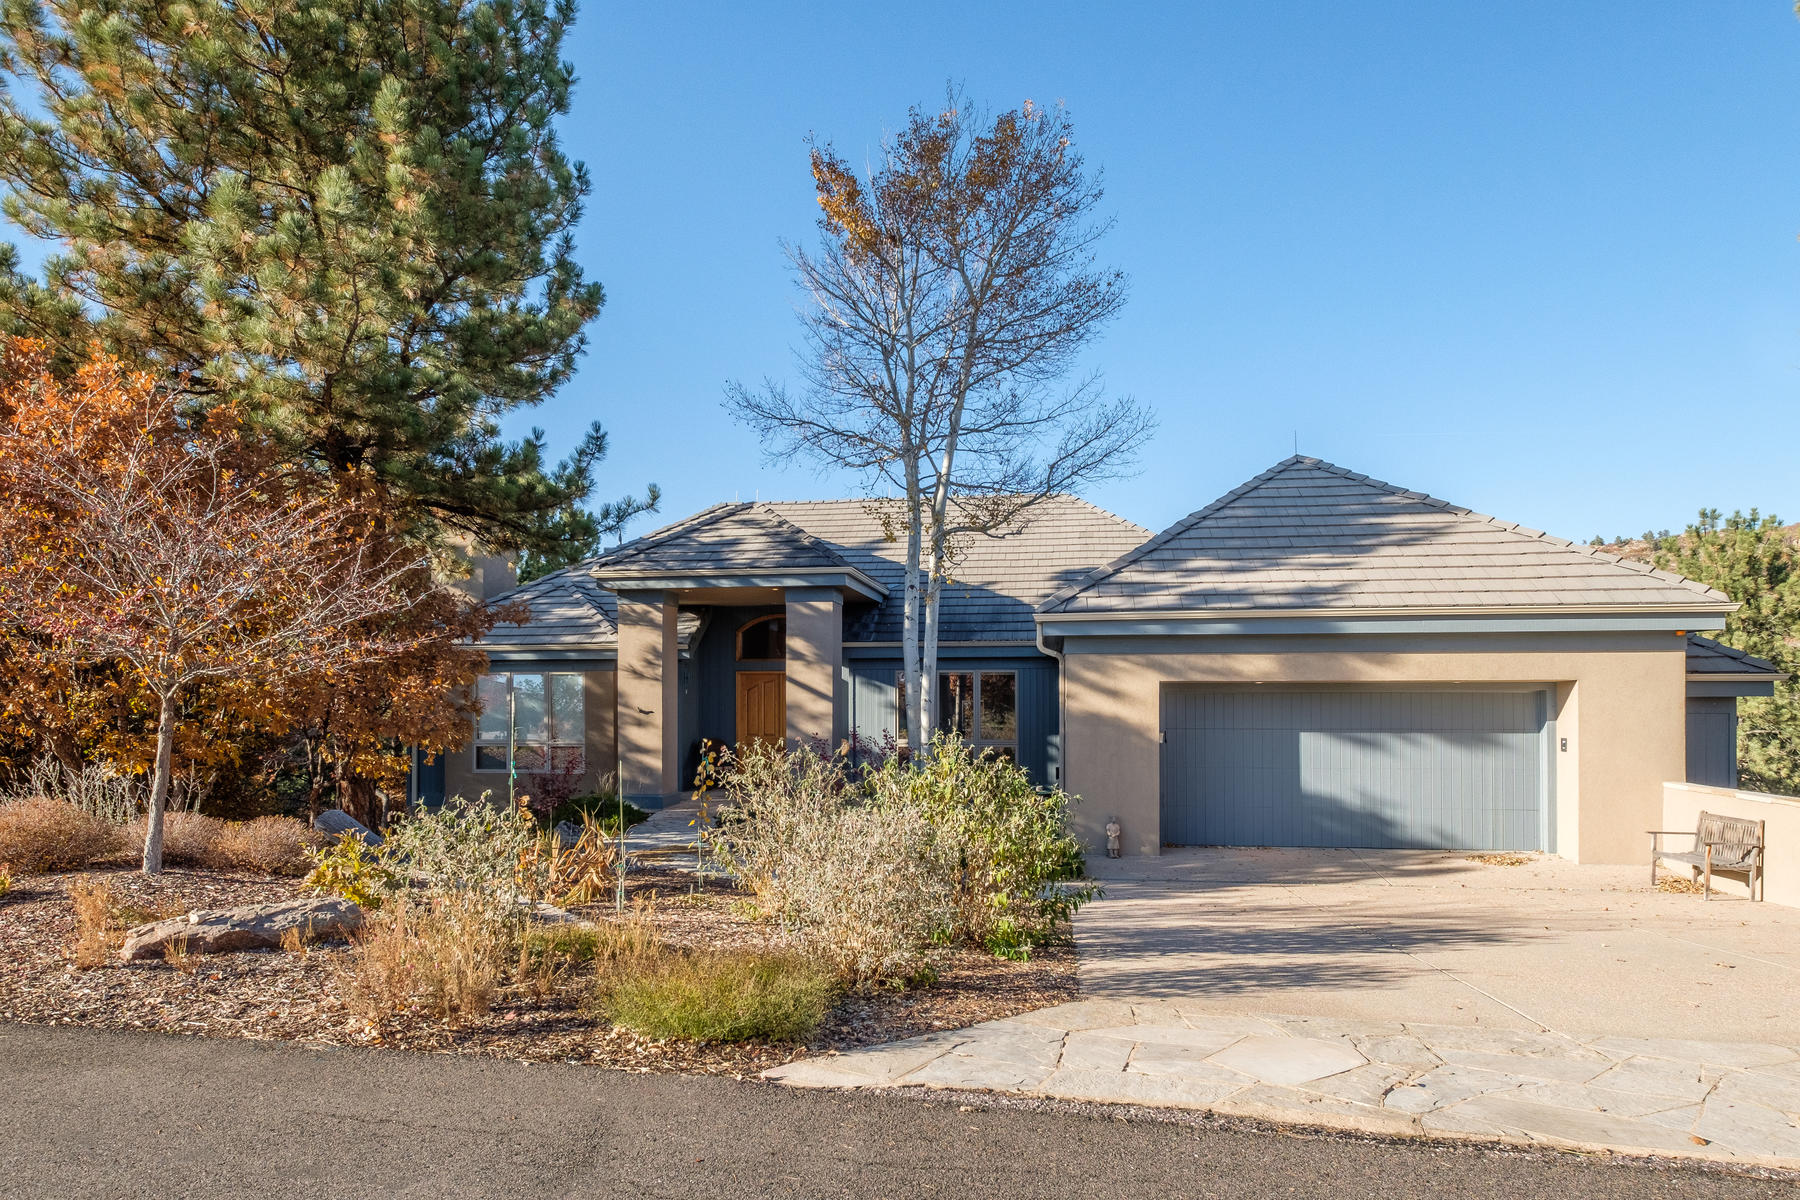 Single Family Home for Sale at 167 Glengarry Pl Castle Pines Village, Castle Rock, Colorado, 80108 United States